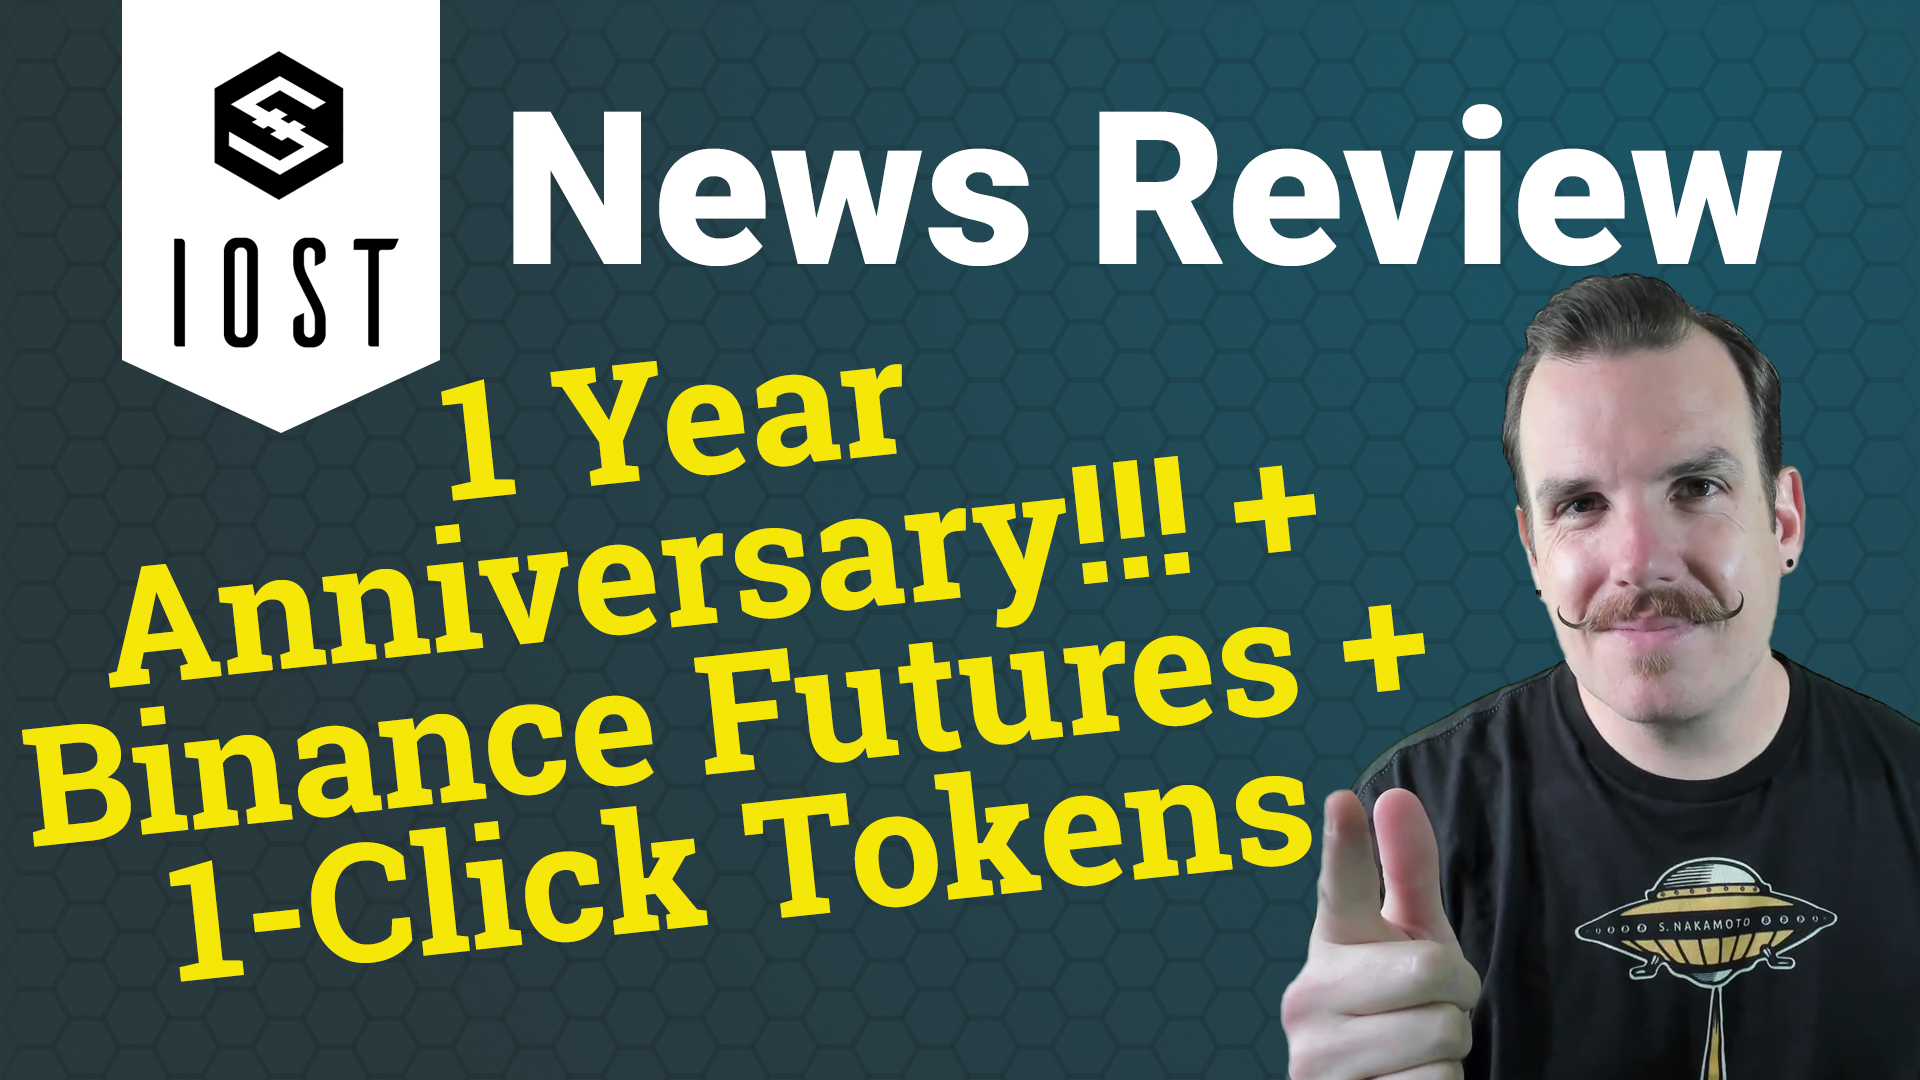 IOST News Review: February 2020 - 1 Year Anniversary, Binance Futures, 1-Click Tokens!